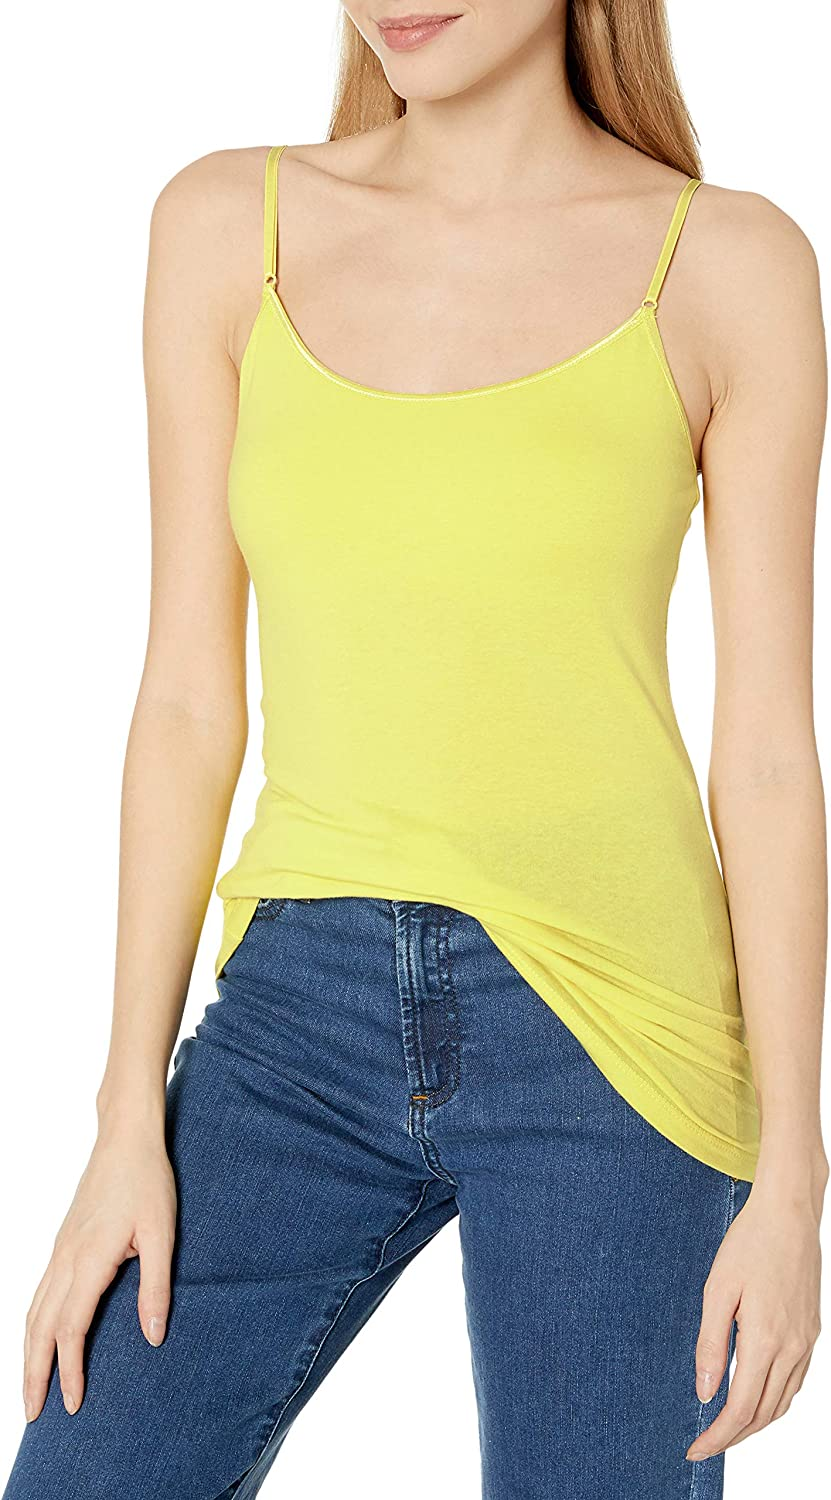 Tresics Women's Trendy Basic Junior Camisole Without Bra for Layering Or Lounging